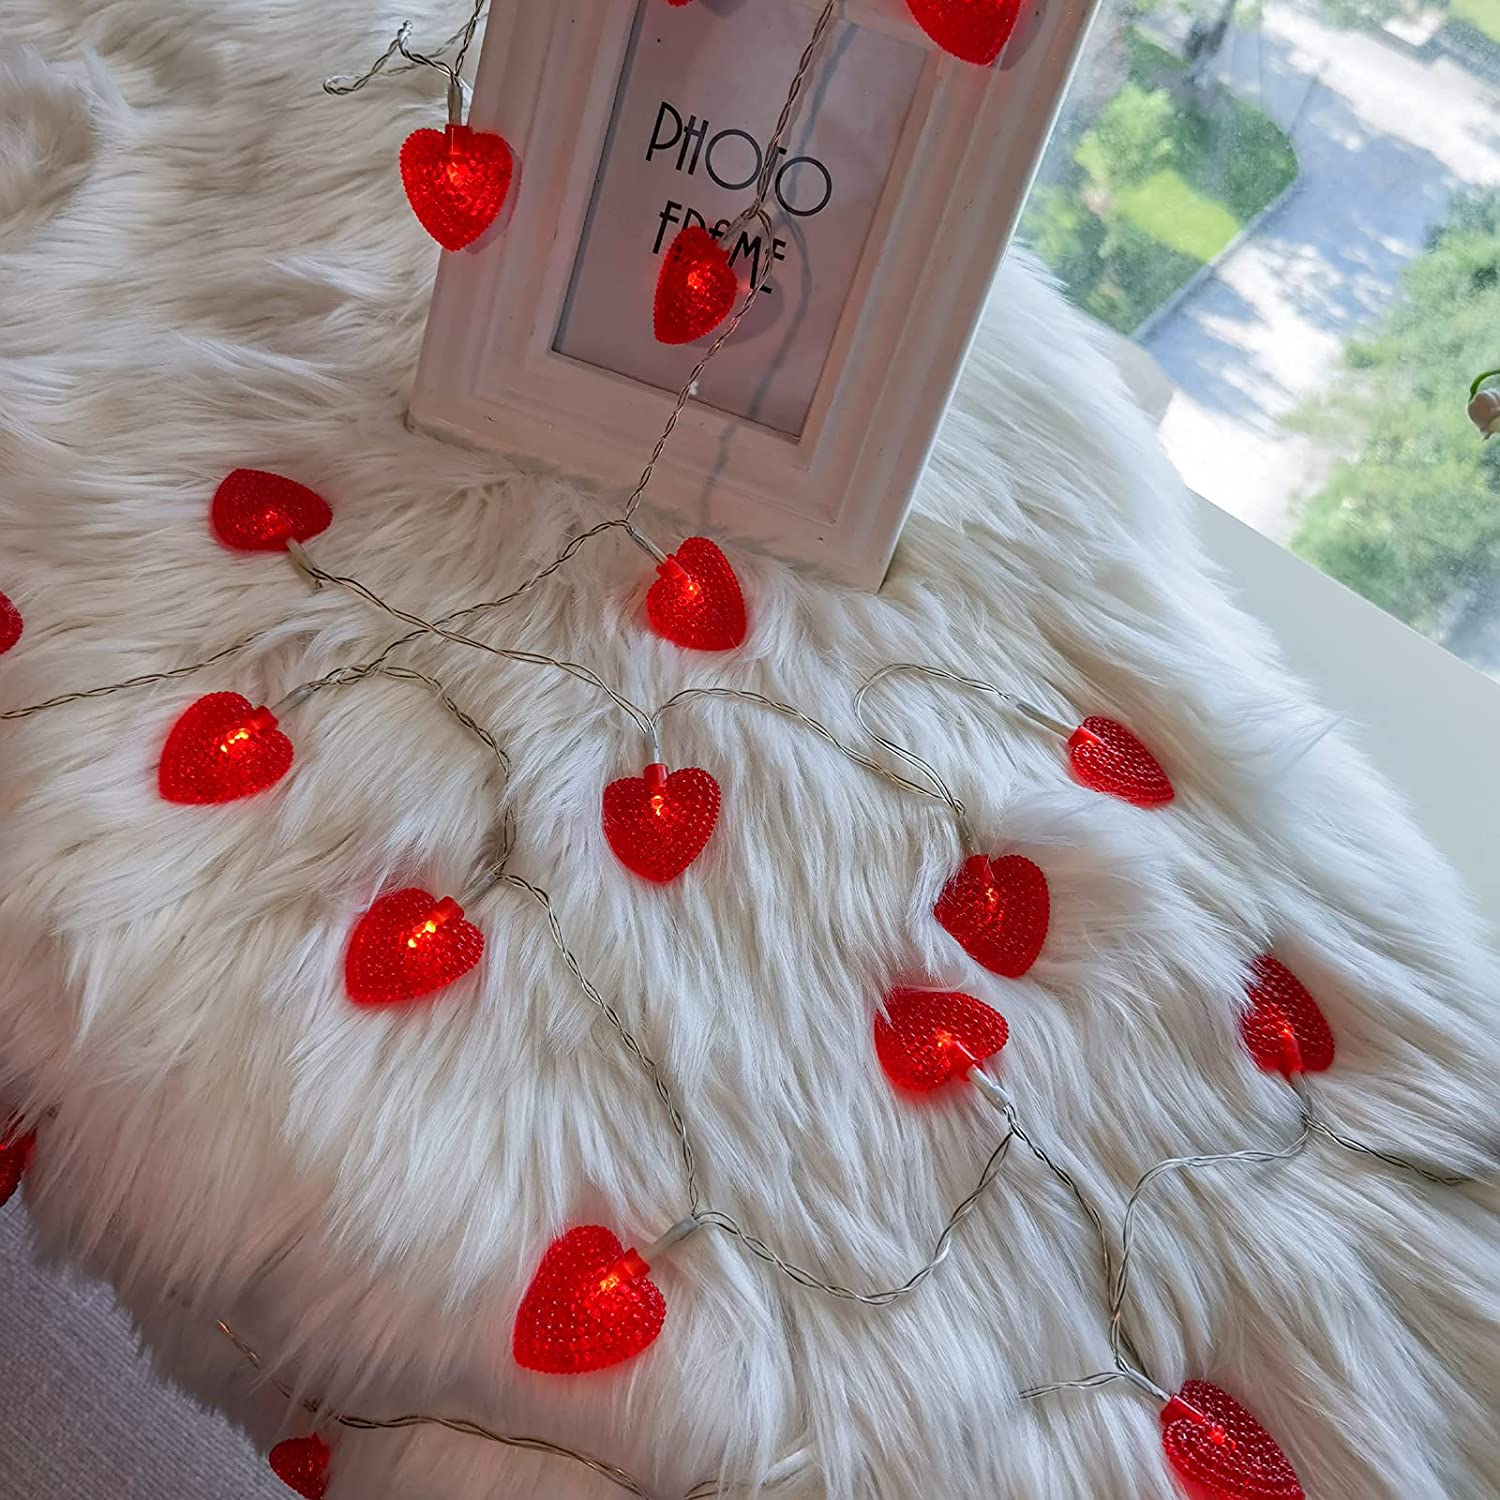 Set of 2 - EAMBRITE 10LT Red Heart String Lights Battery Operated for Bedroom Wedding Love Anniversary